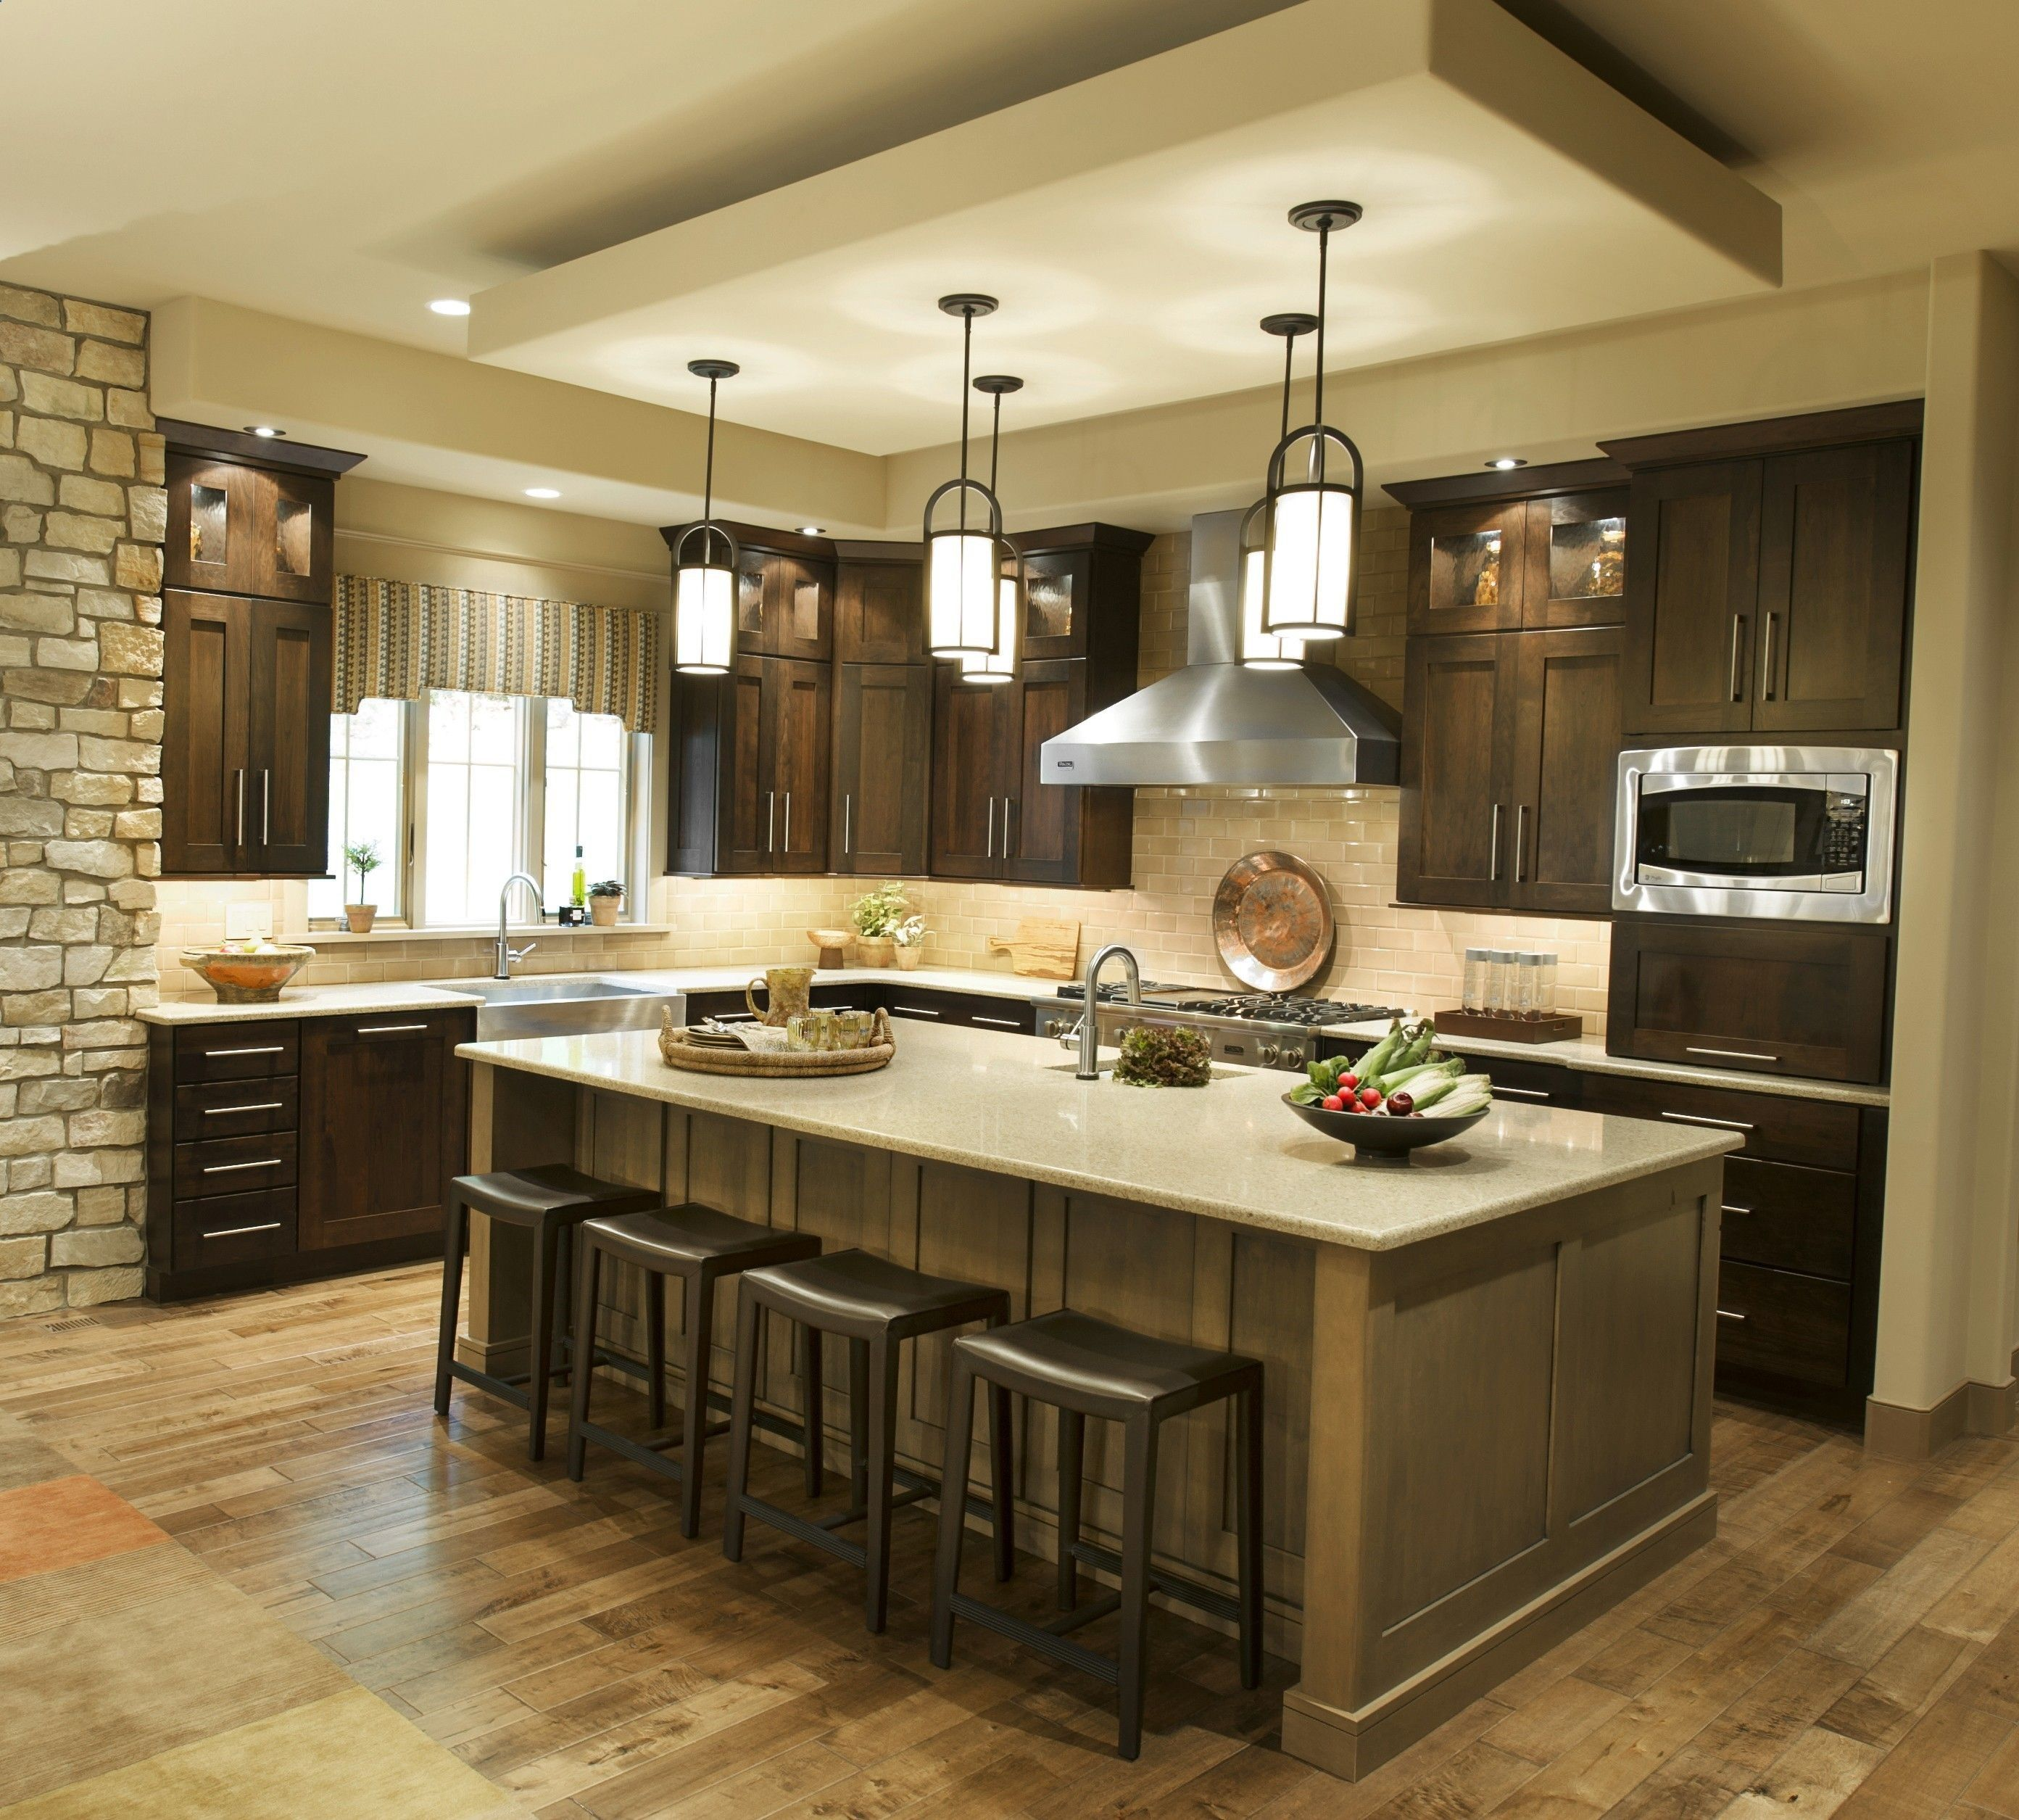 Fetching Five Light Kitchen Island Lighting Inspiration In Small L Shaped Kitchen Design Features Dark Brown Painted Finish Kitchen Cabinet Dark Kitchen Cabinets Kitchen Pendant Lighting Small L Shaped Kitchens